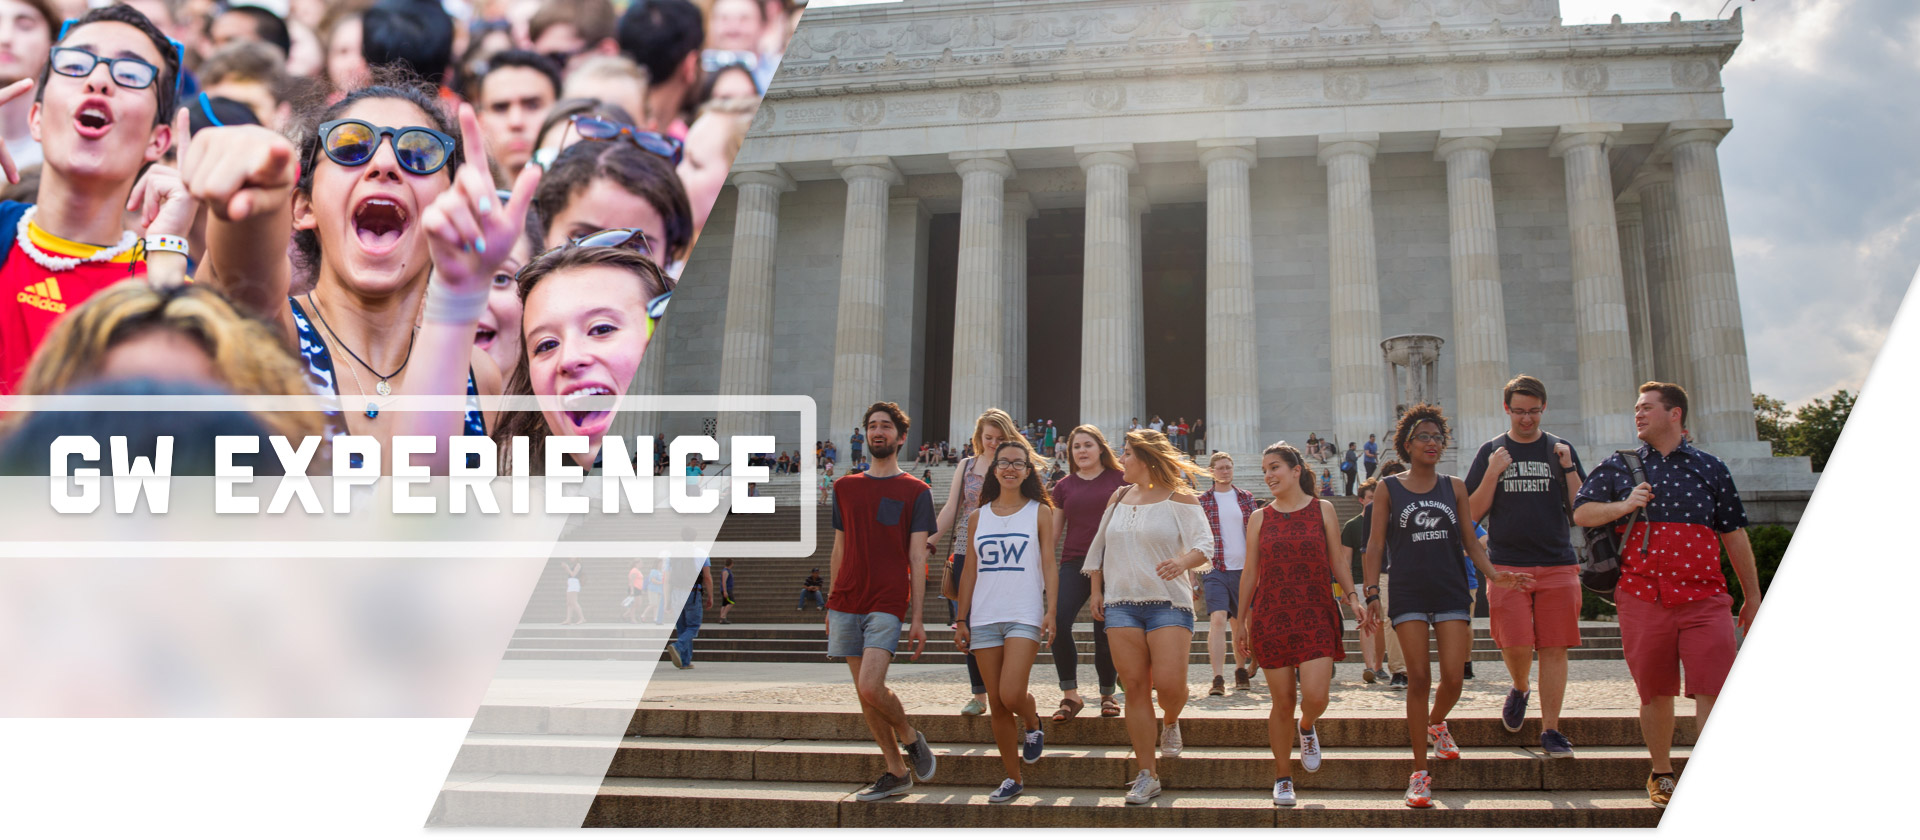 GW Experience: Students walking down the stops of the Lincoln Memorial